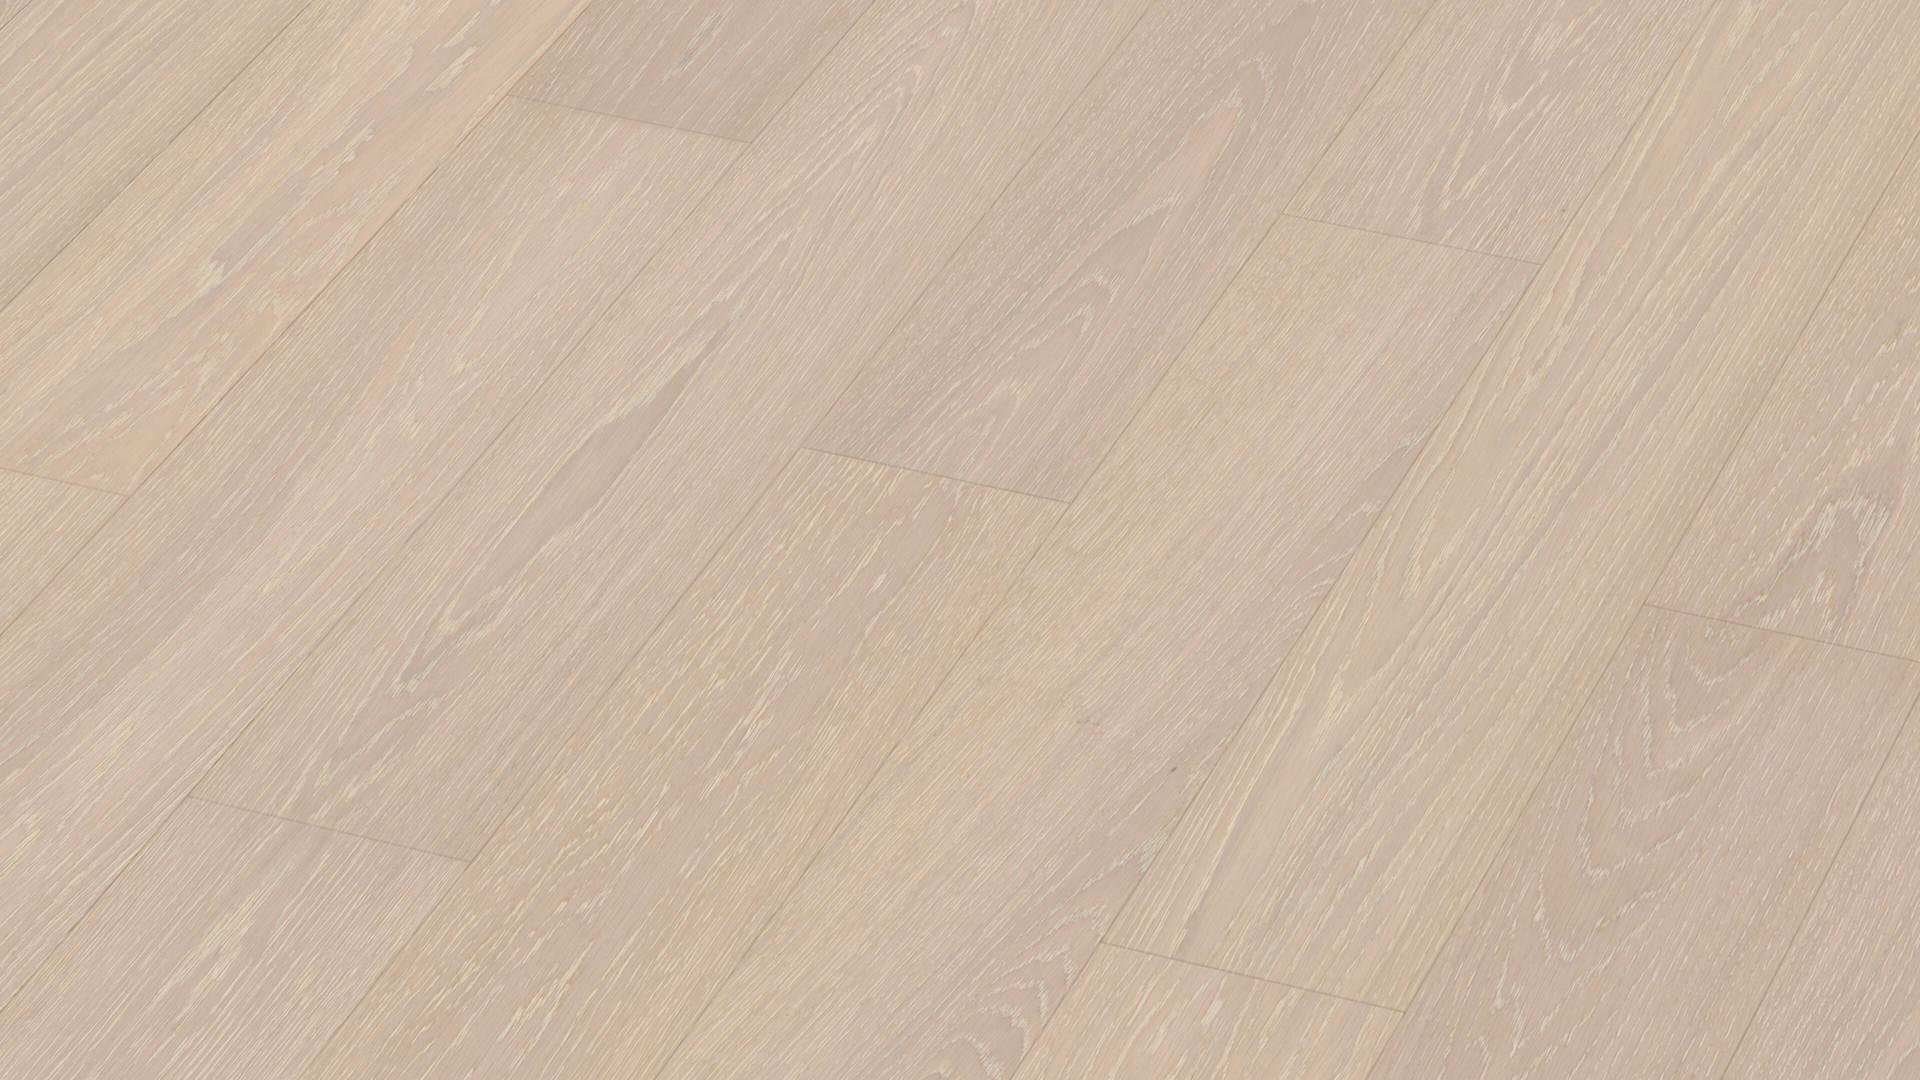 Parquet flooring MeisterParquet. longlife PS 300 Off-white limed oak harmonious 8815